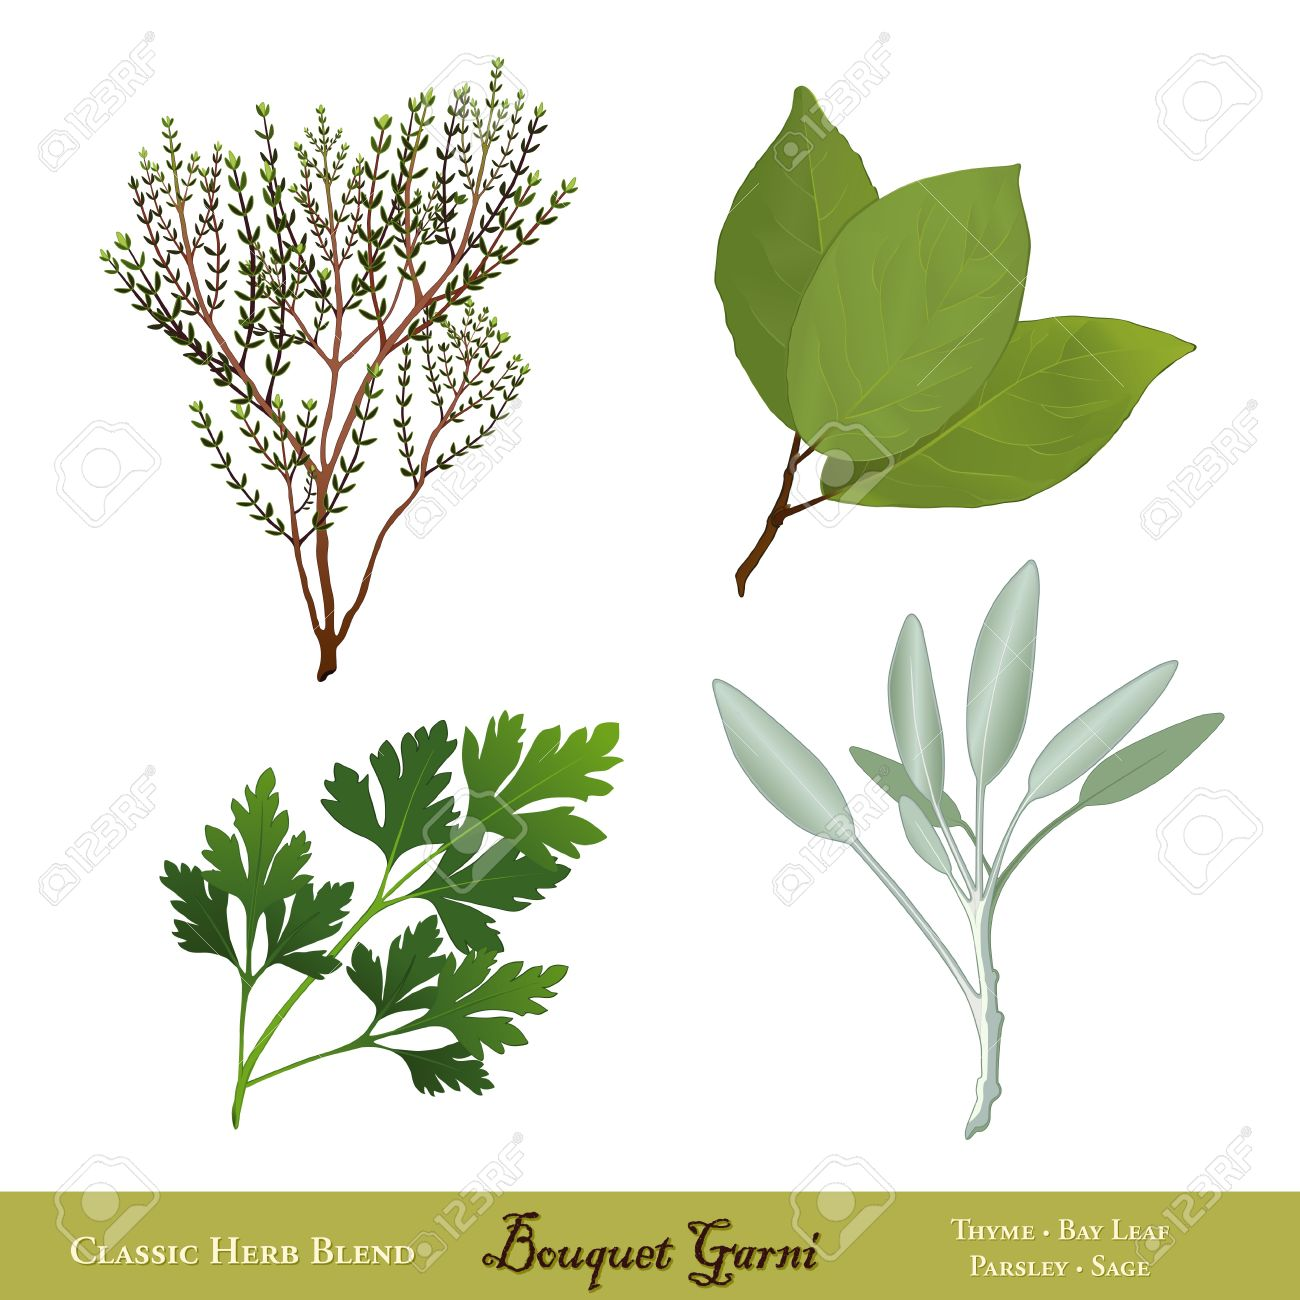 Bouquet Garni, Traditional French Herb Blend Bay Leaves, English.